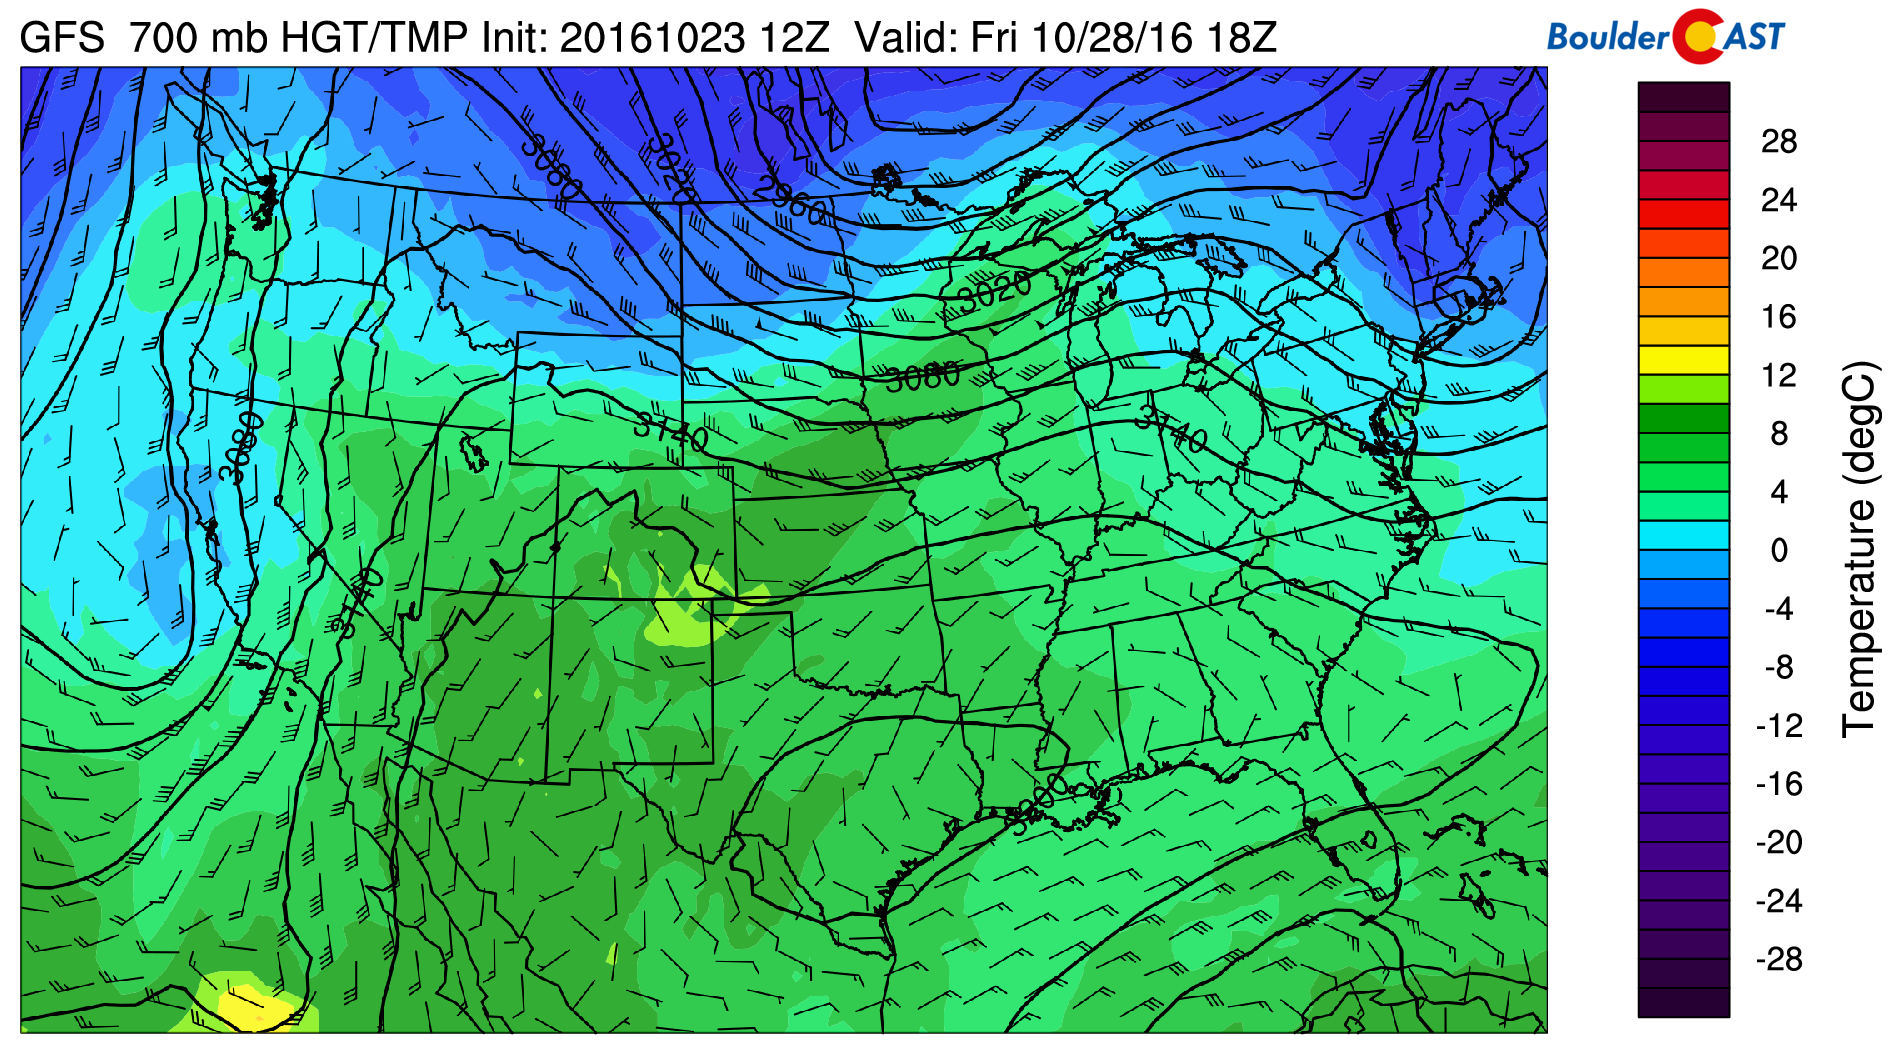 GFS 700 mb temperature pattern on Friday